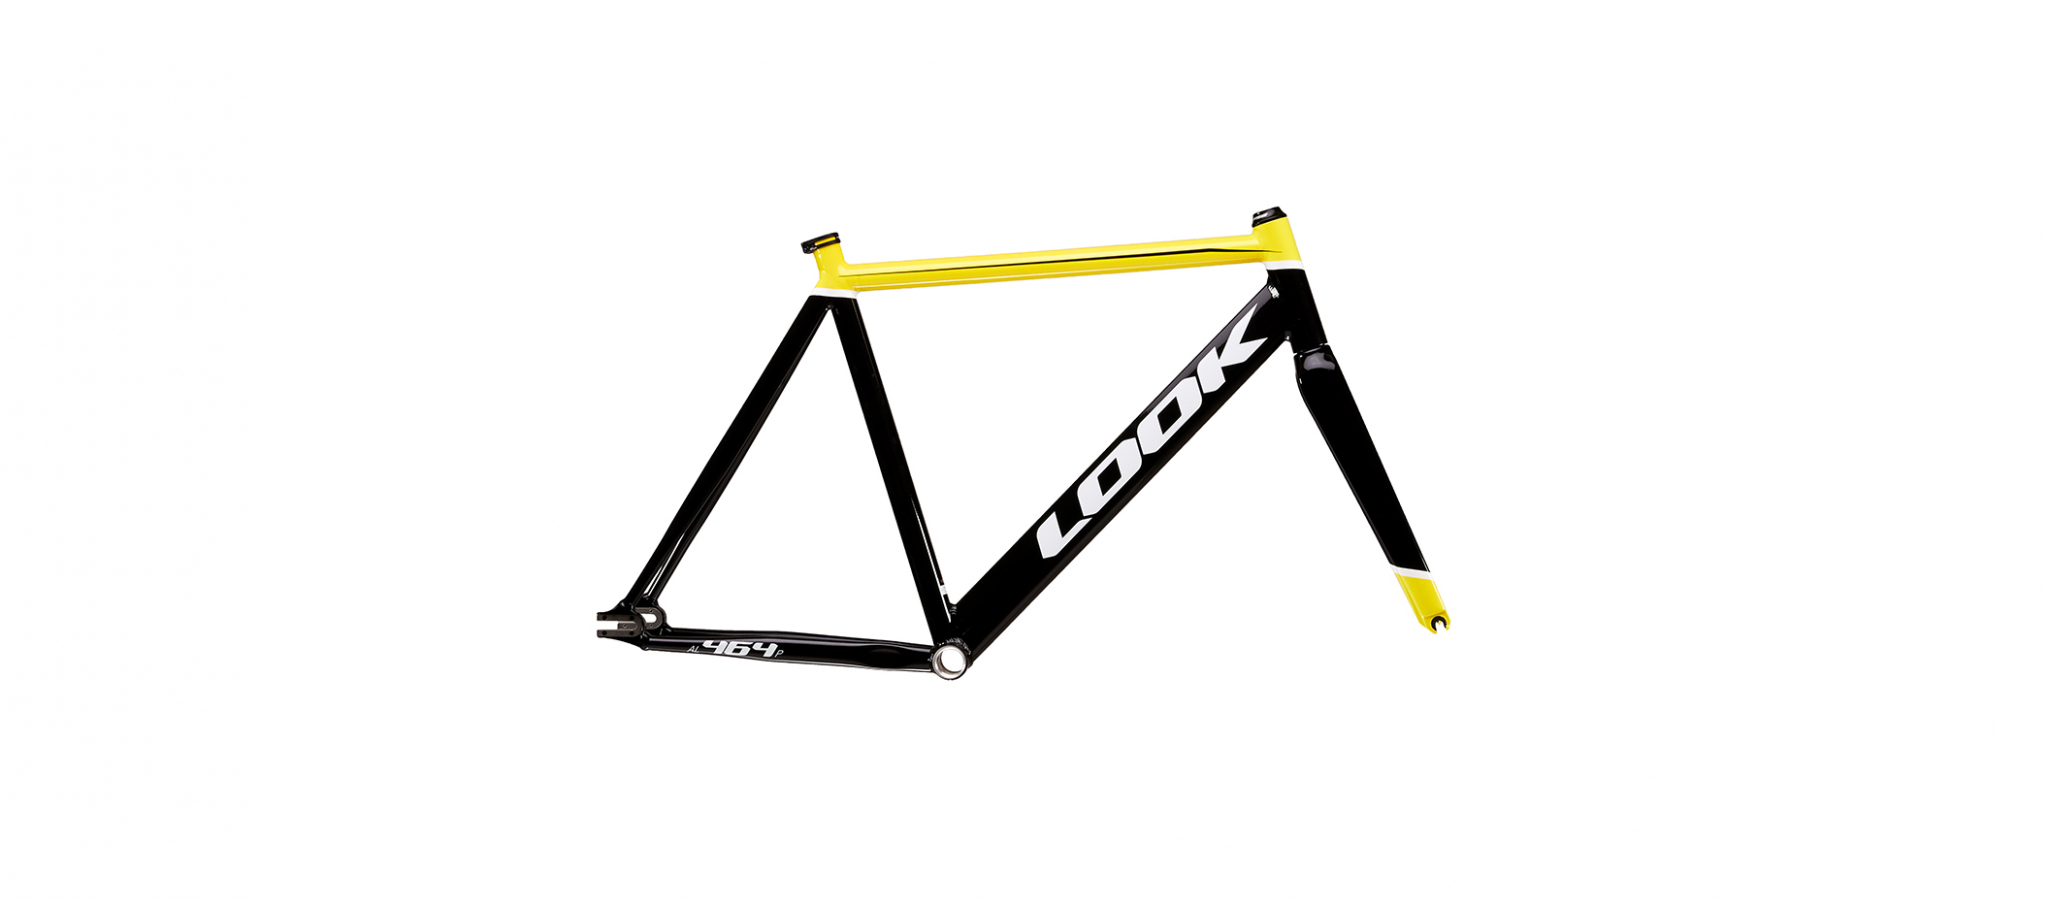 bike-product-page_cover-white-background_2112x1276_AL-464_track_black-yellow-glossy_2020_C1.jpg